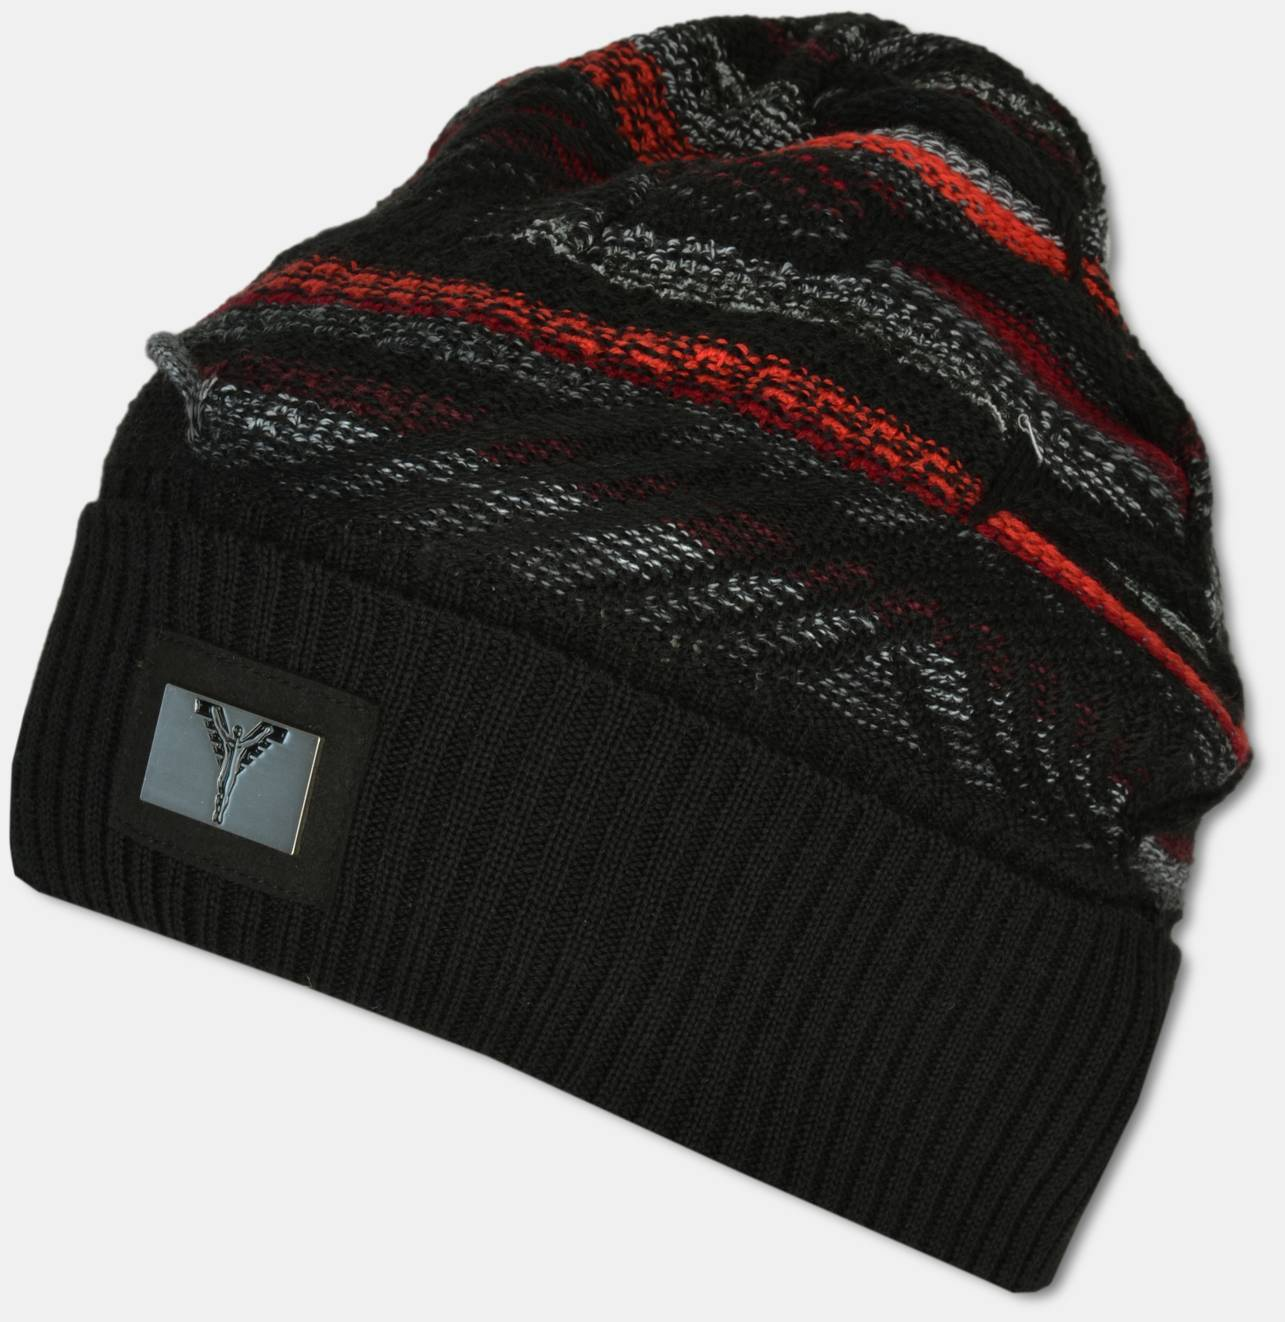 545bcf2f8 CARLO COLUCCI Online-Shop | Knit beanie, black-red OS | purchase online